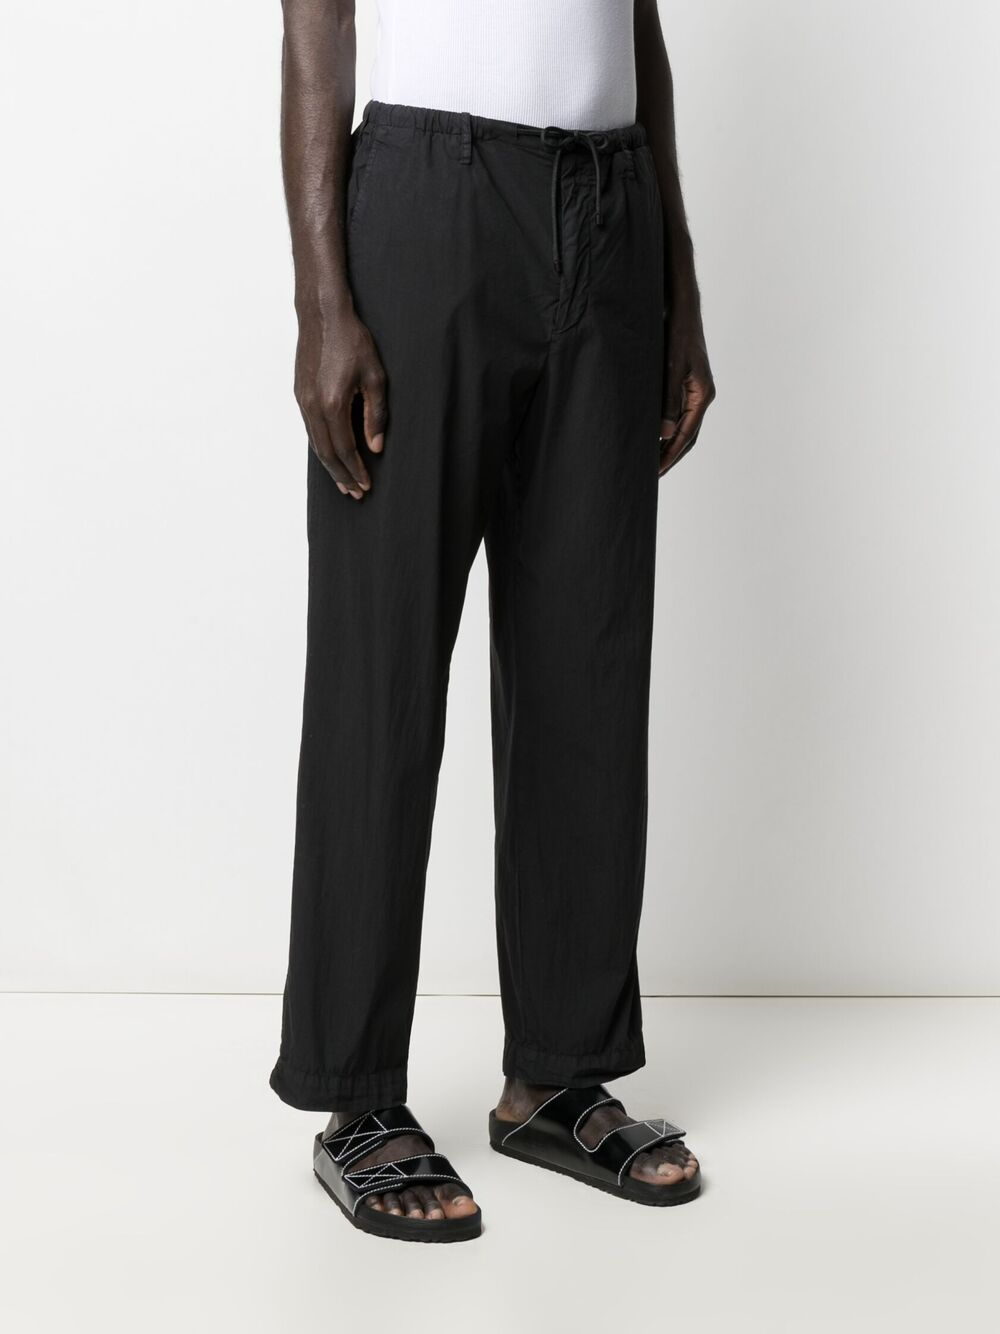 Dries Van Noten elasticated cropped trousers man black DRIES VAN NOTEN | Trousers | PENNY2279BLACK